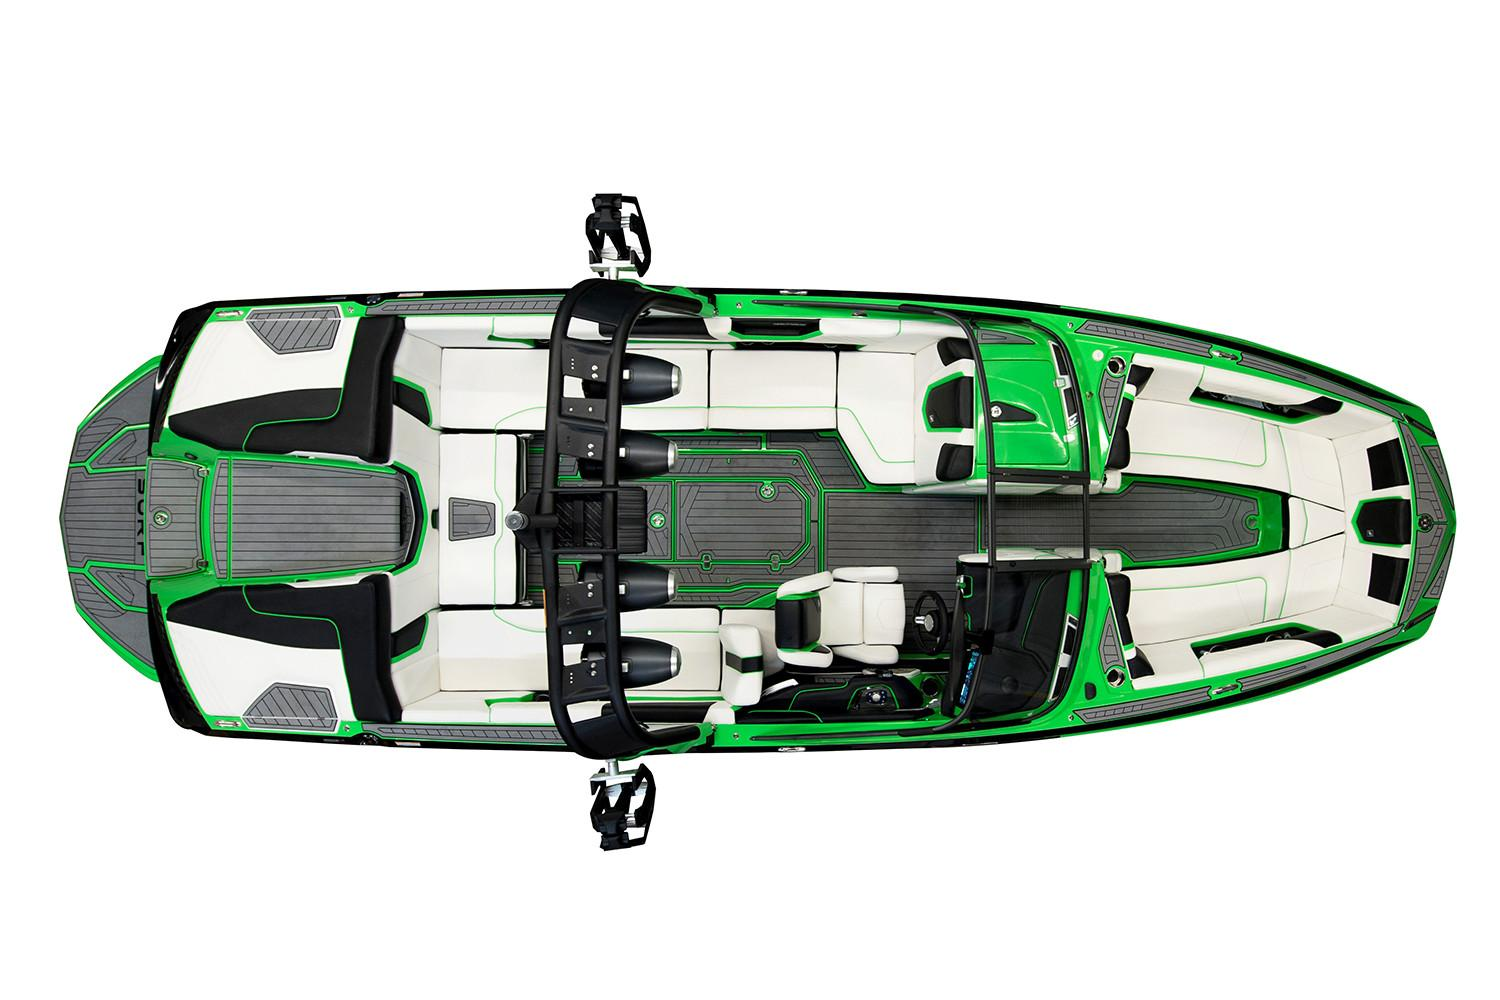 2019 Nautique Super Air Nautique G25 in Speculator, New York - Photo 12